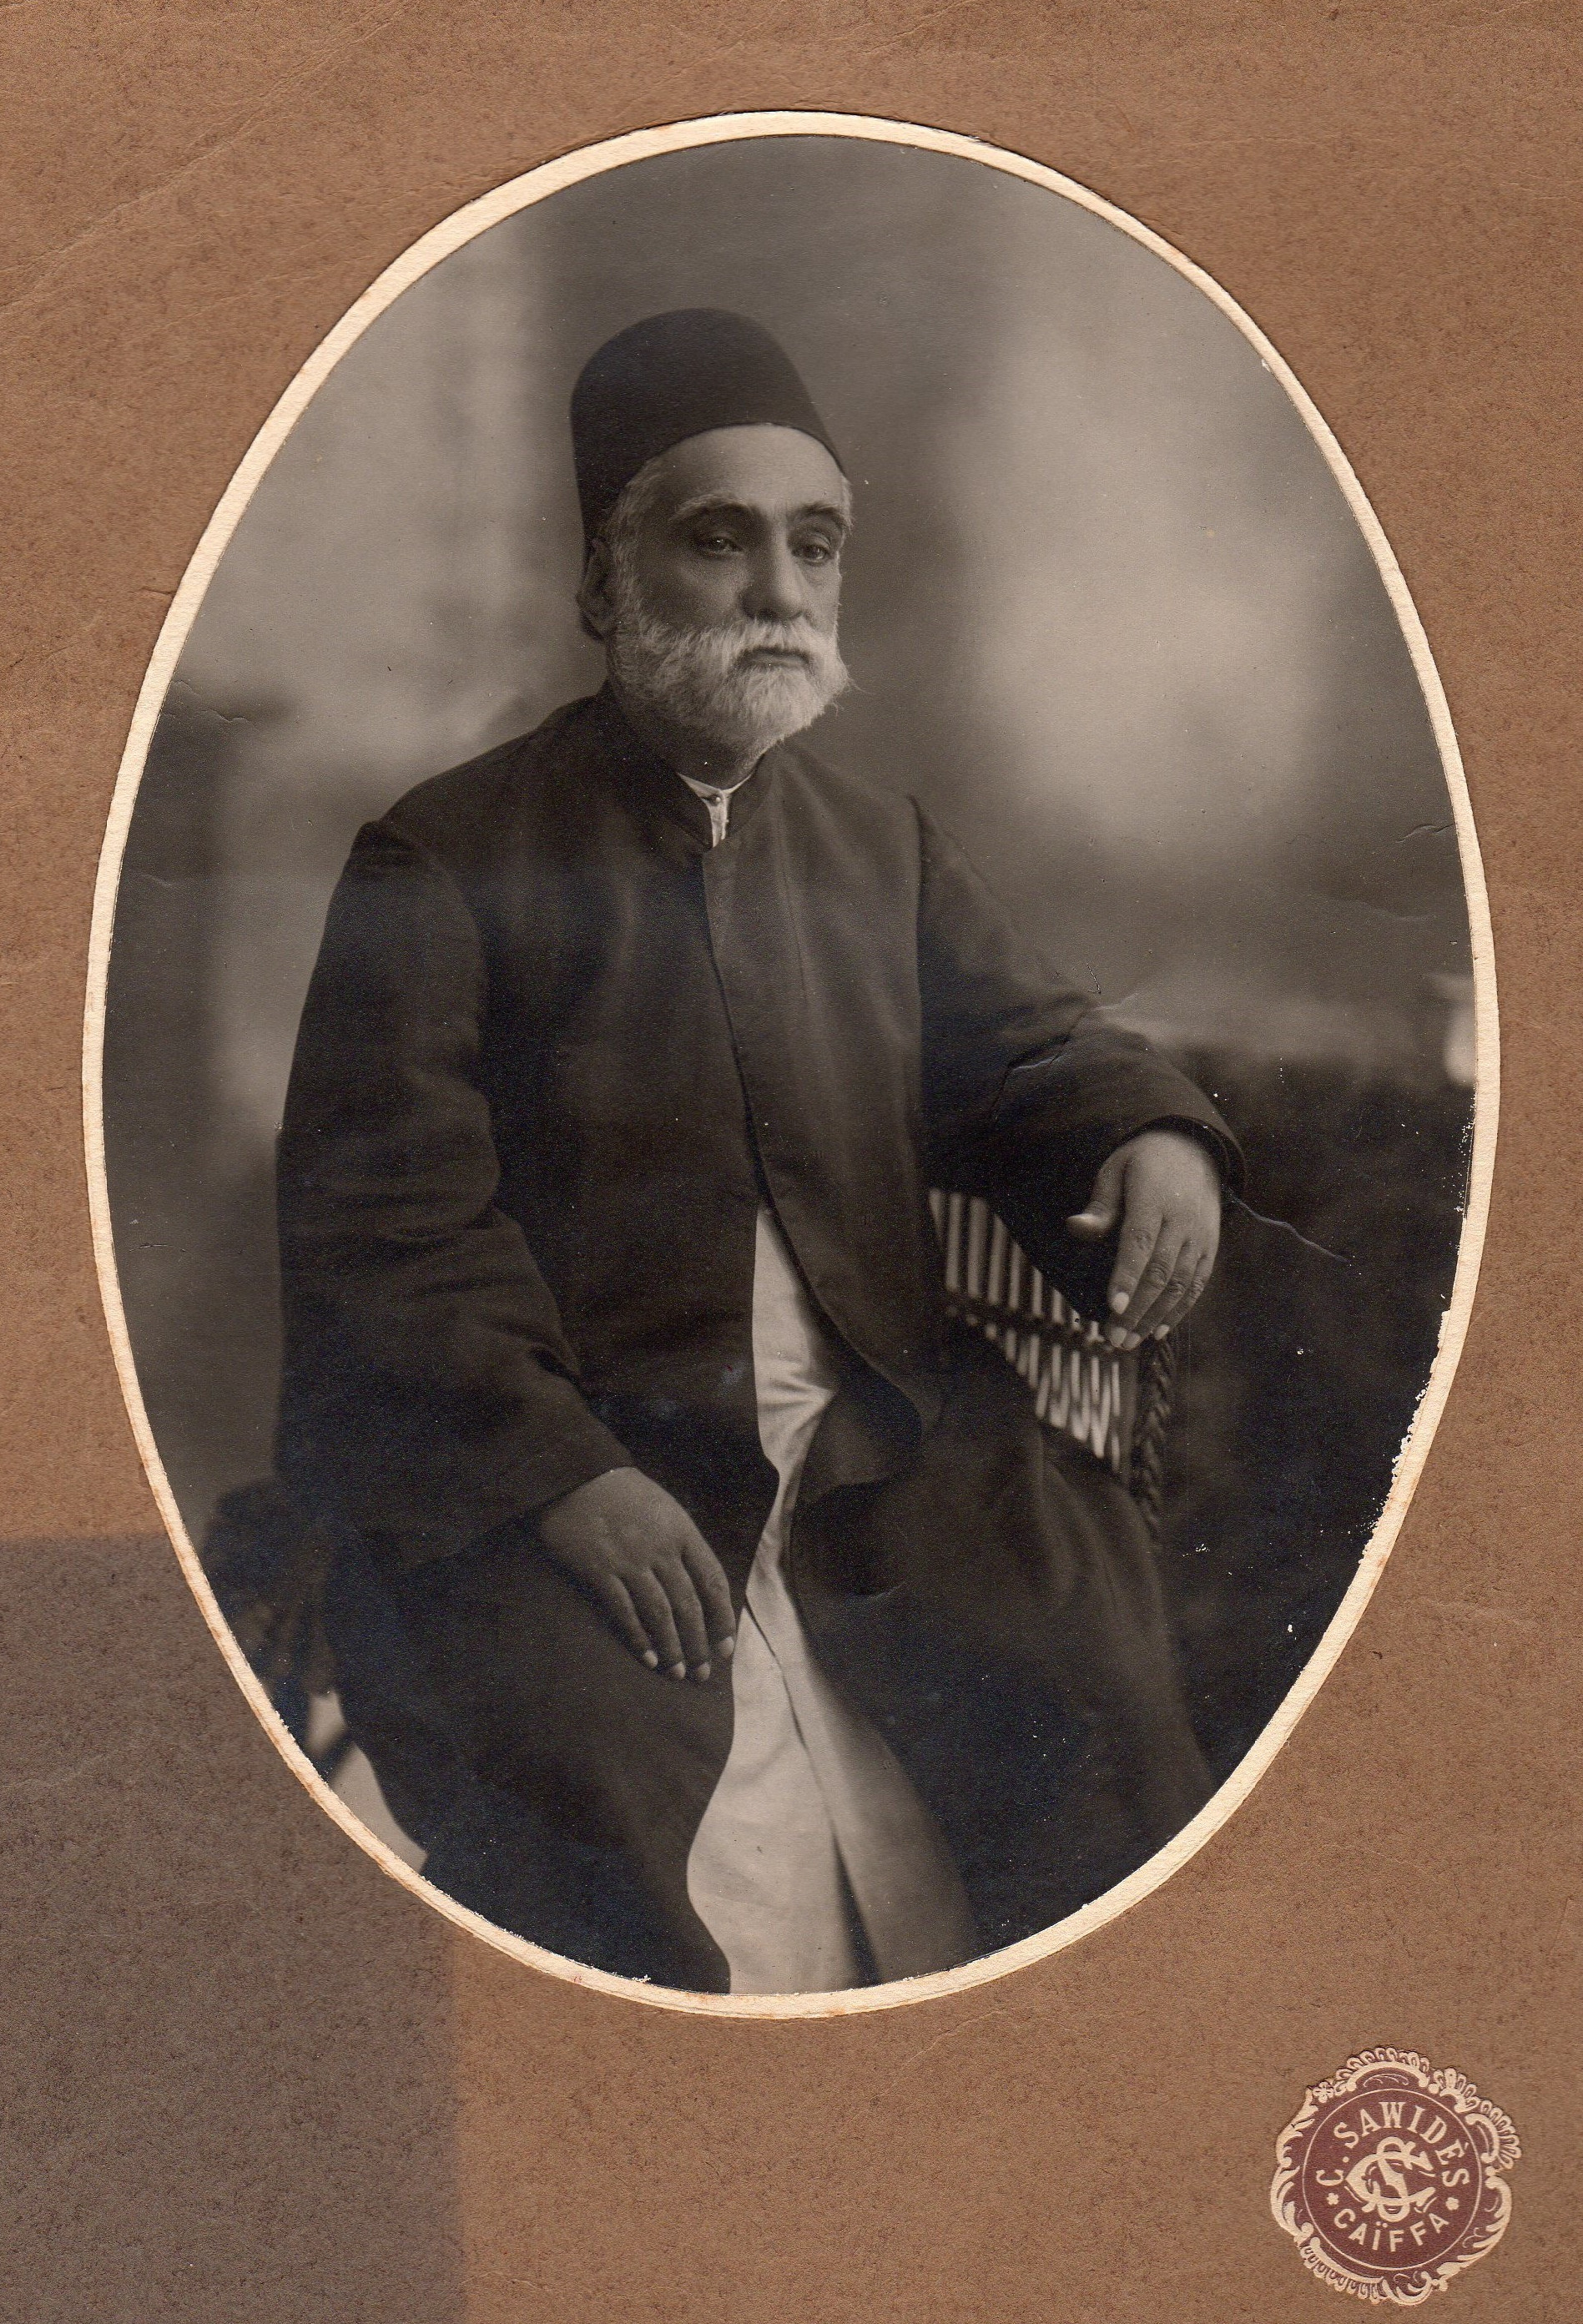 Mirza Mohsen Afnan , son- in- law of Abdul'Baha and husband of Tuba Khanum